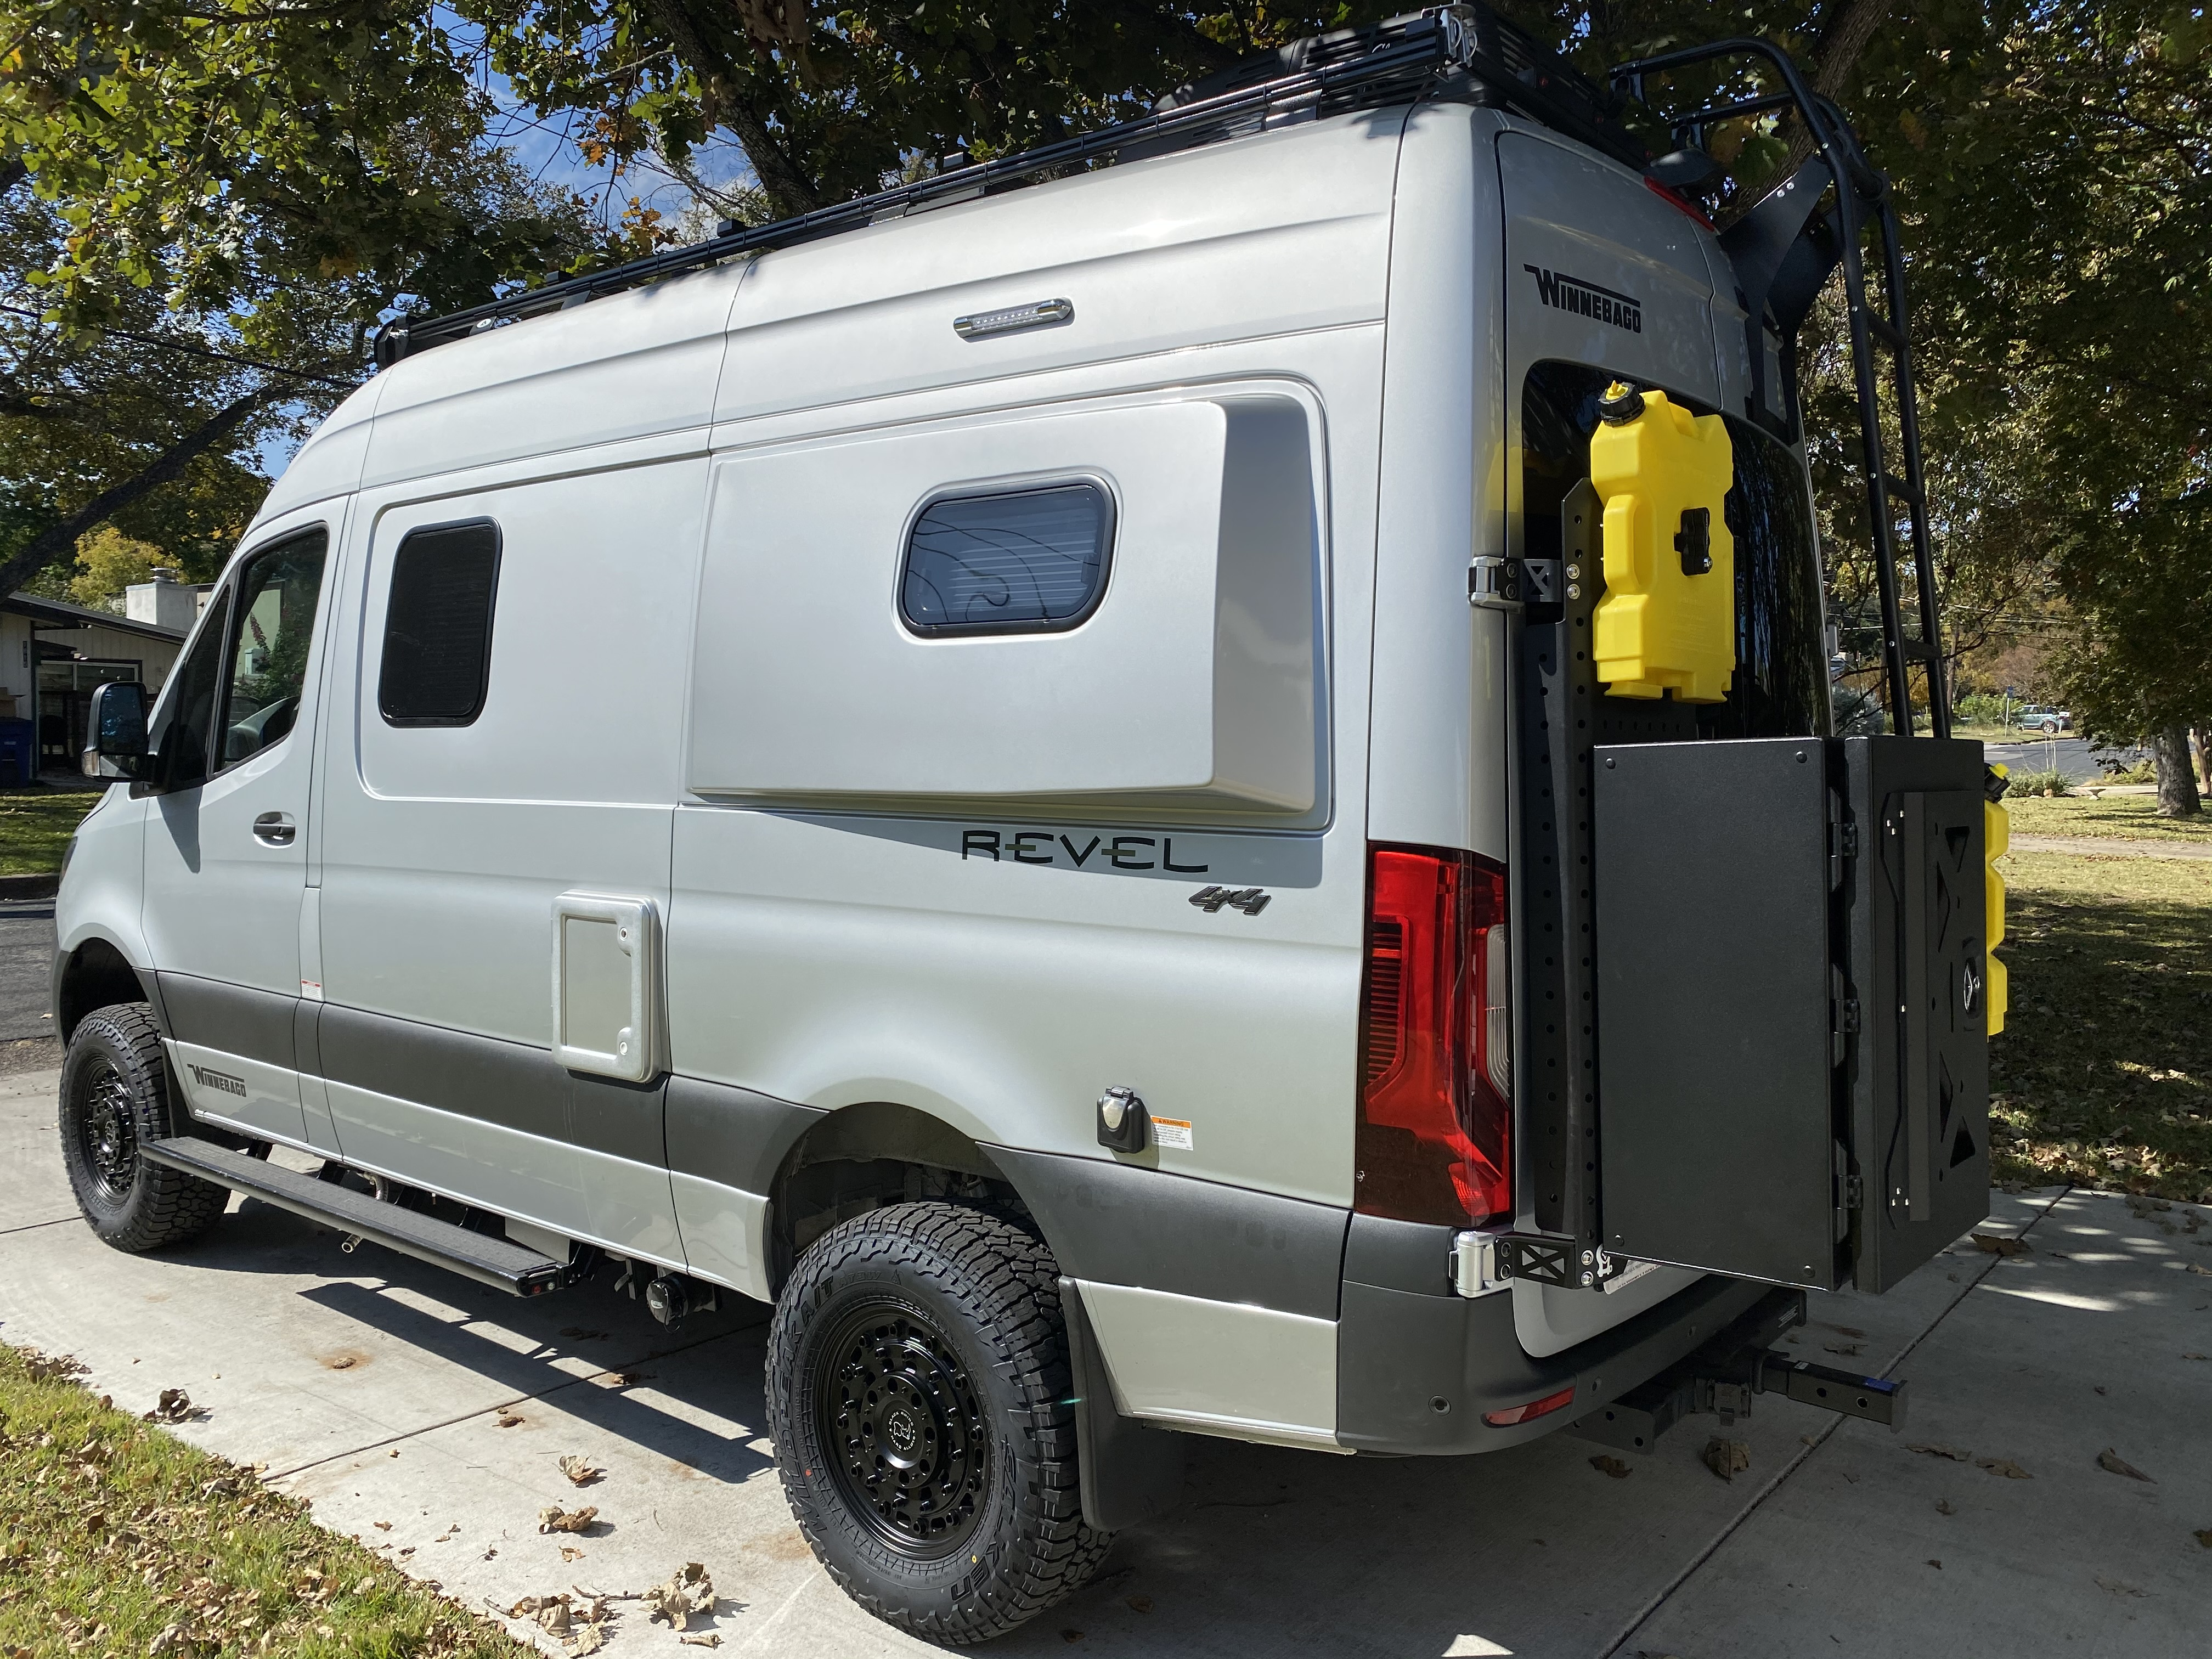 Exterior box keeps all the items to run the rv out of the van so you have more room! Also, diesel gas containers if wanted.  . Mercedes-Benz Sprinter 2021